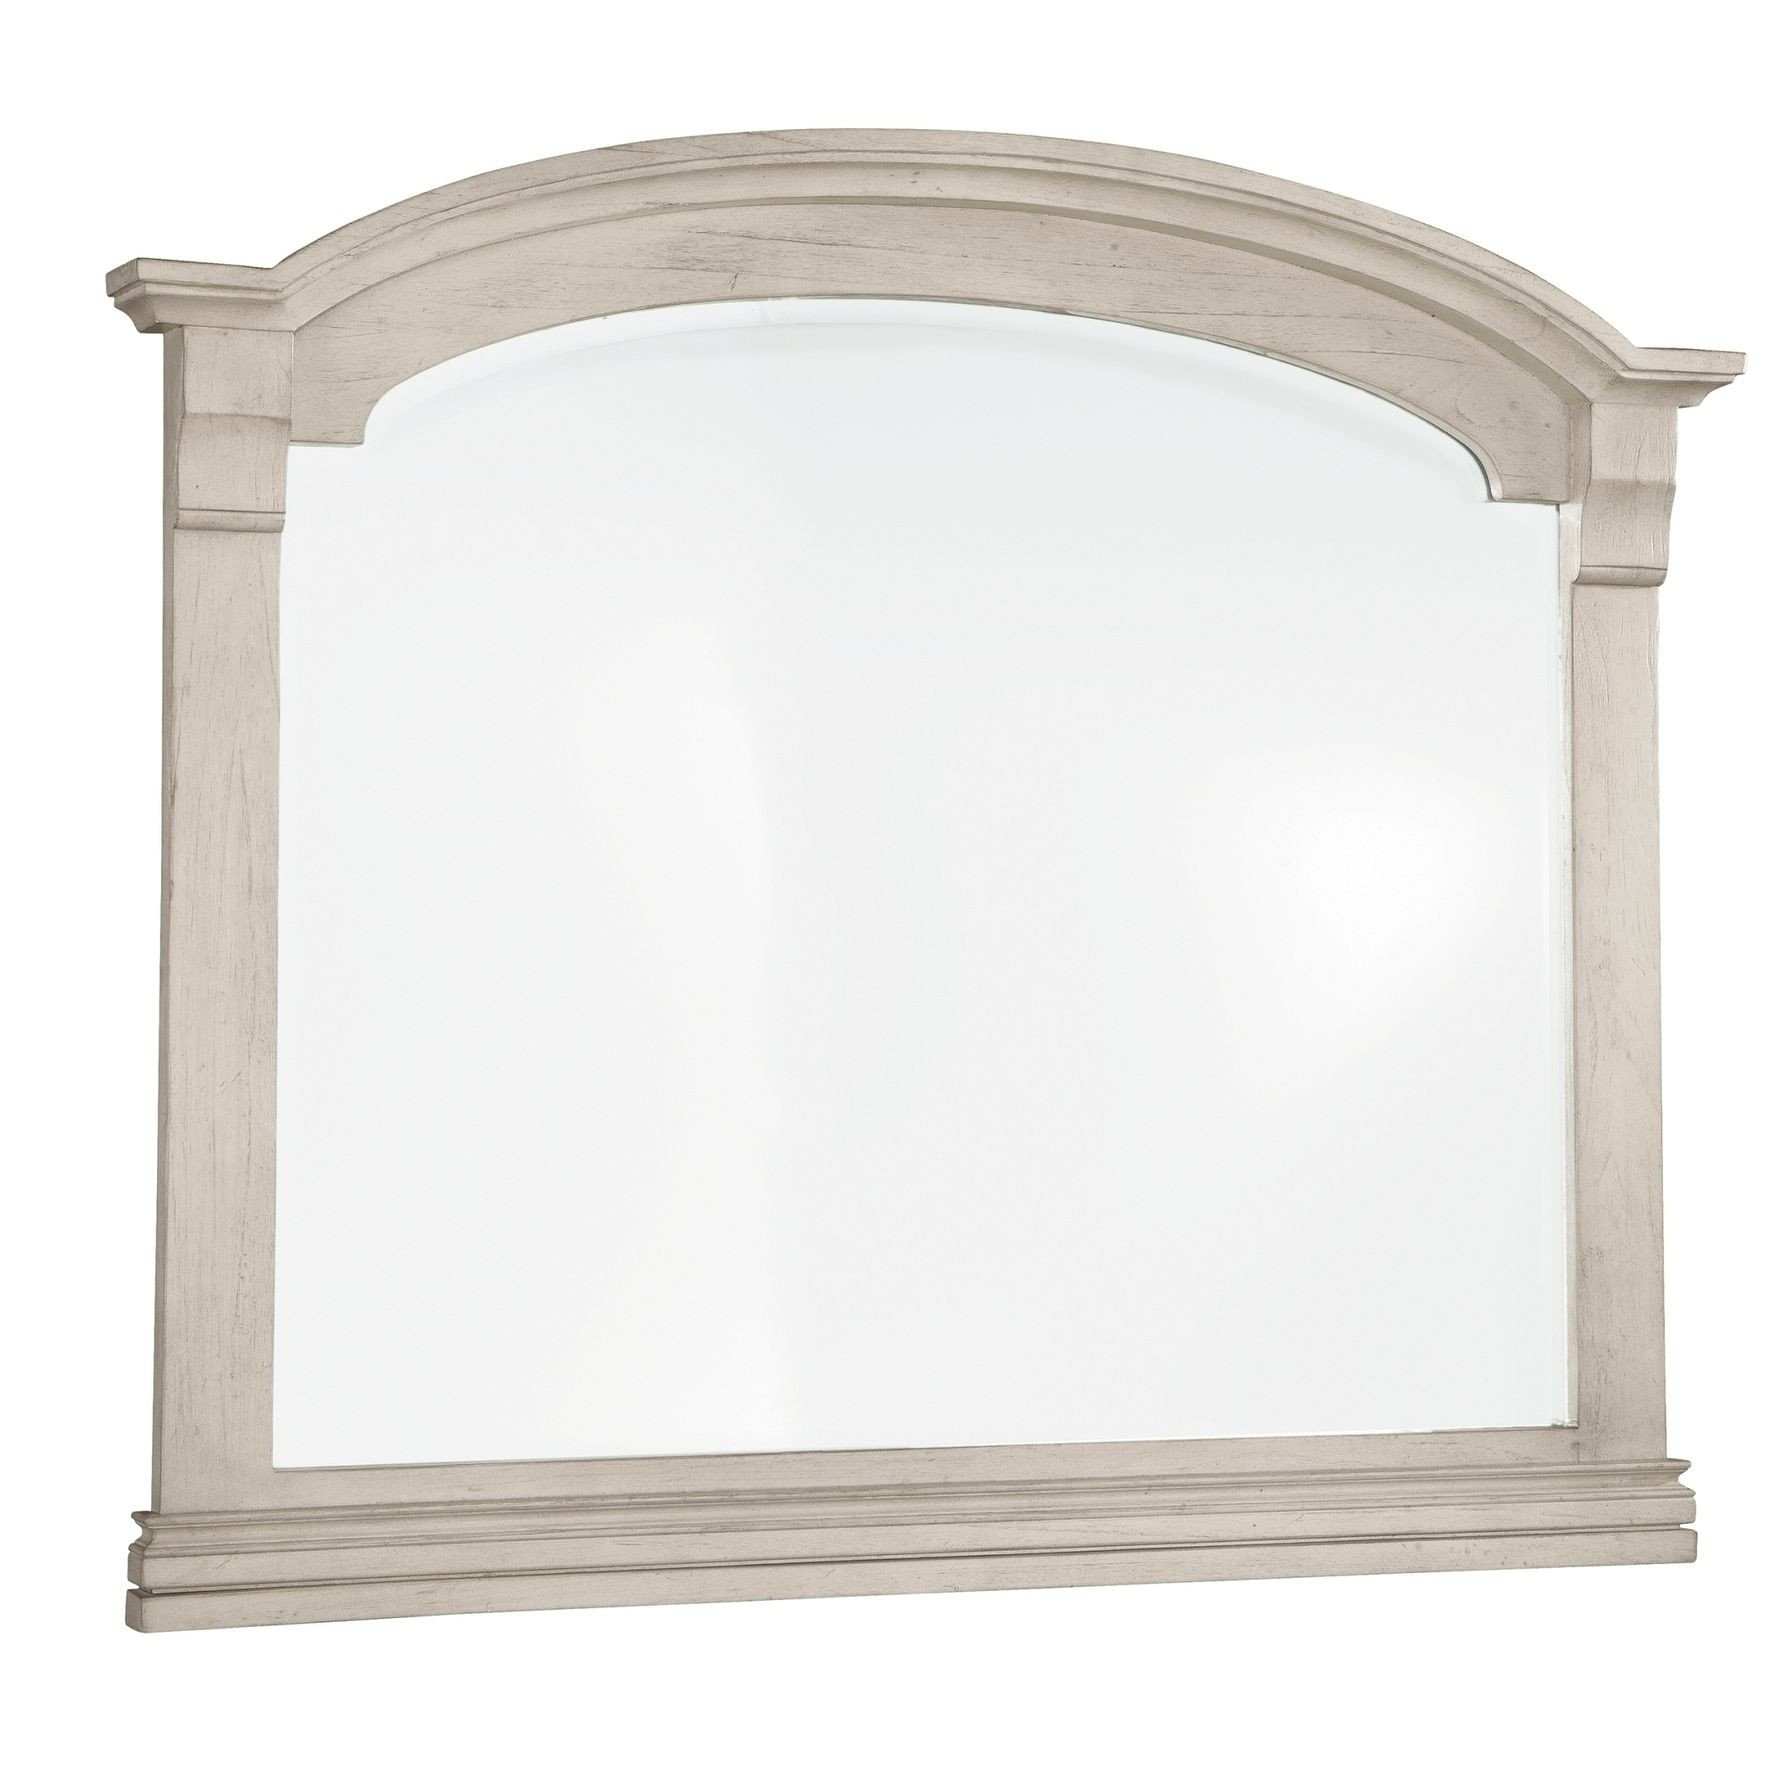 Full Length Bedroom Mirror Luxury Hekman Furniture Homestead Distressed Antique White Arched